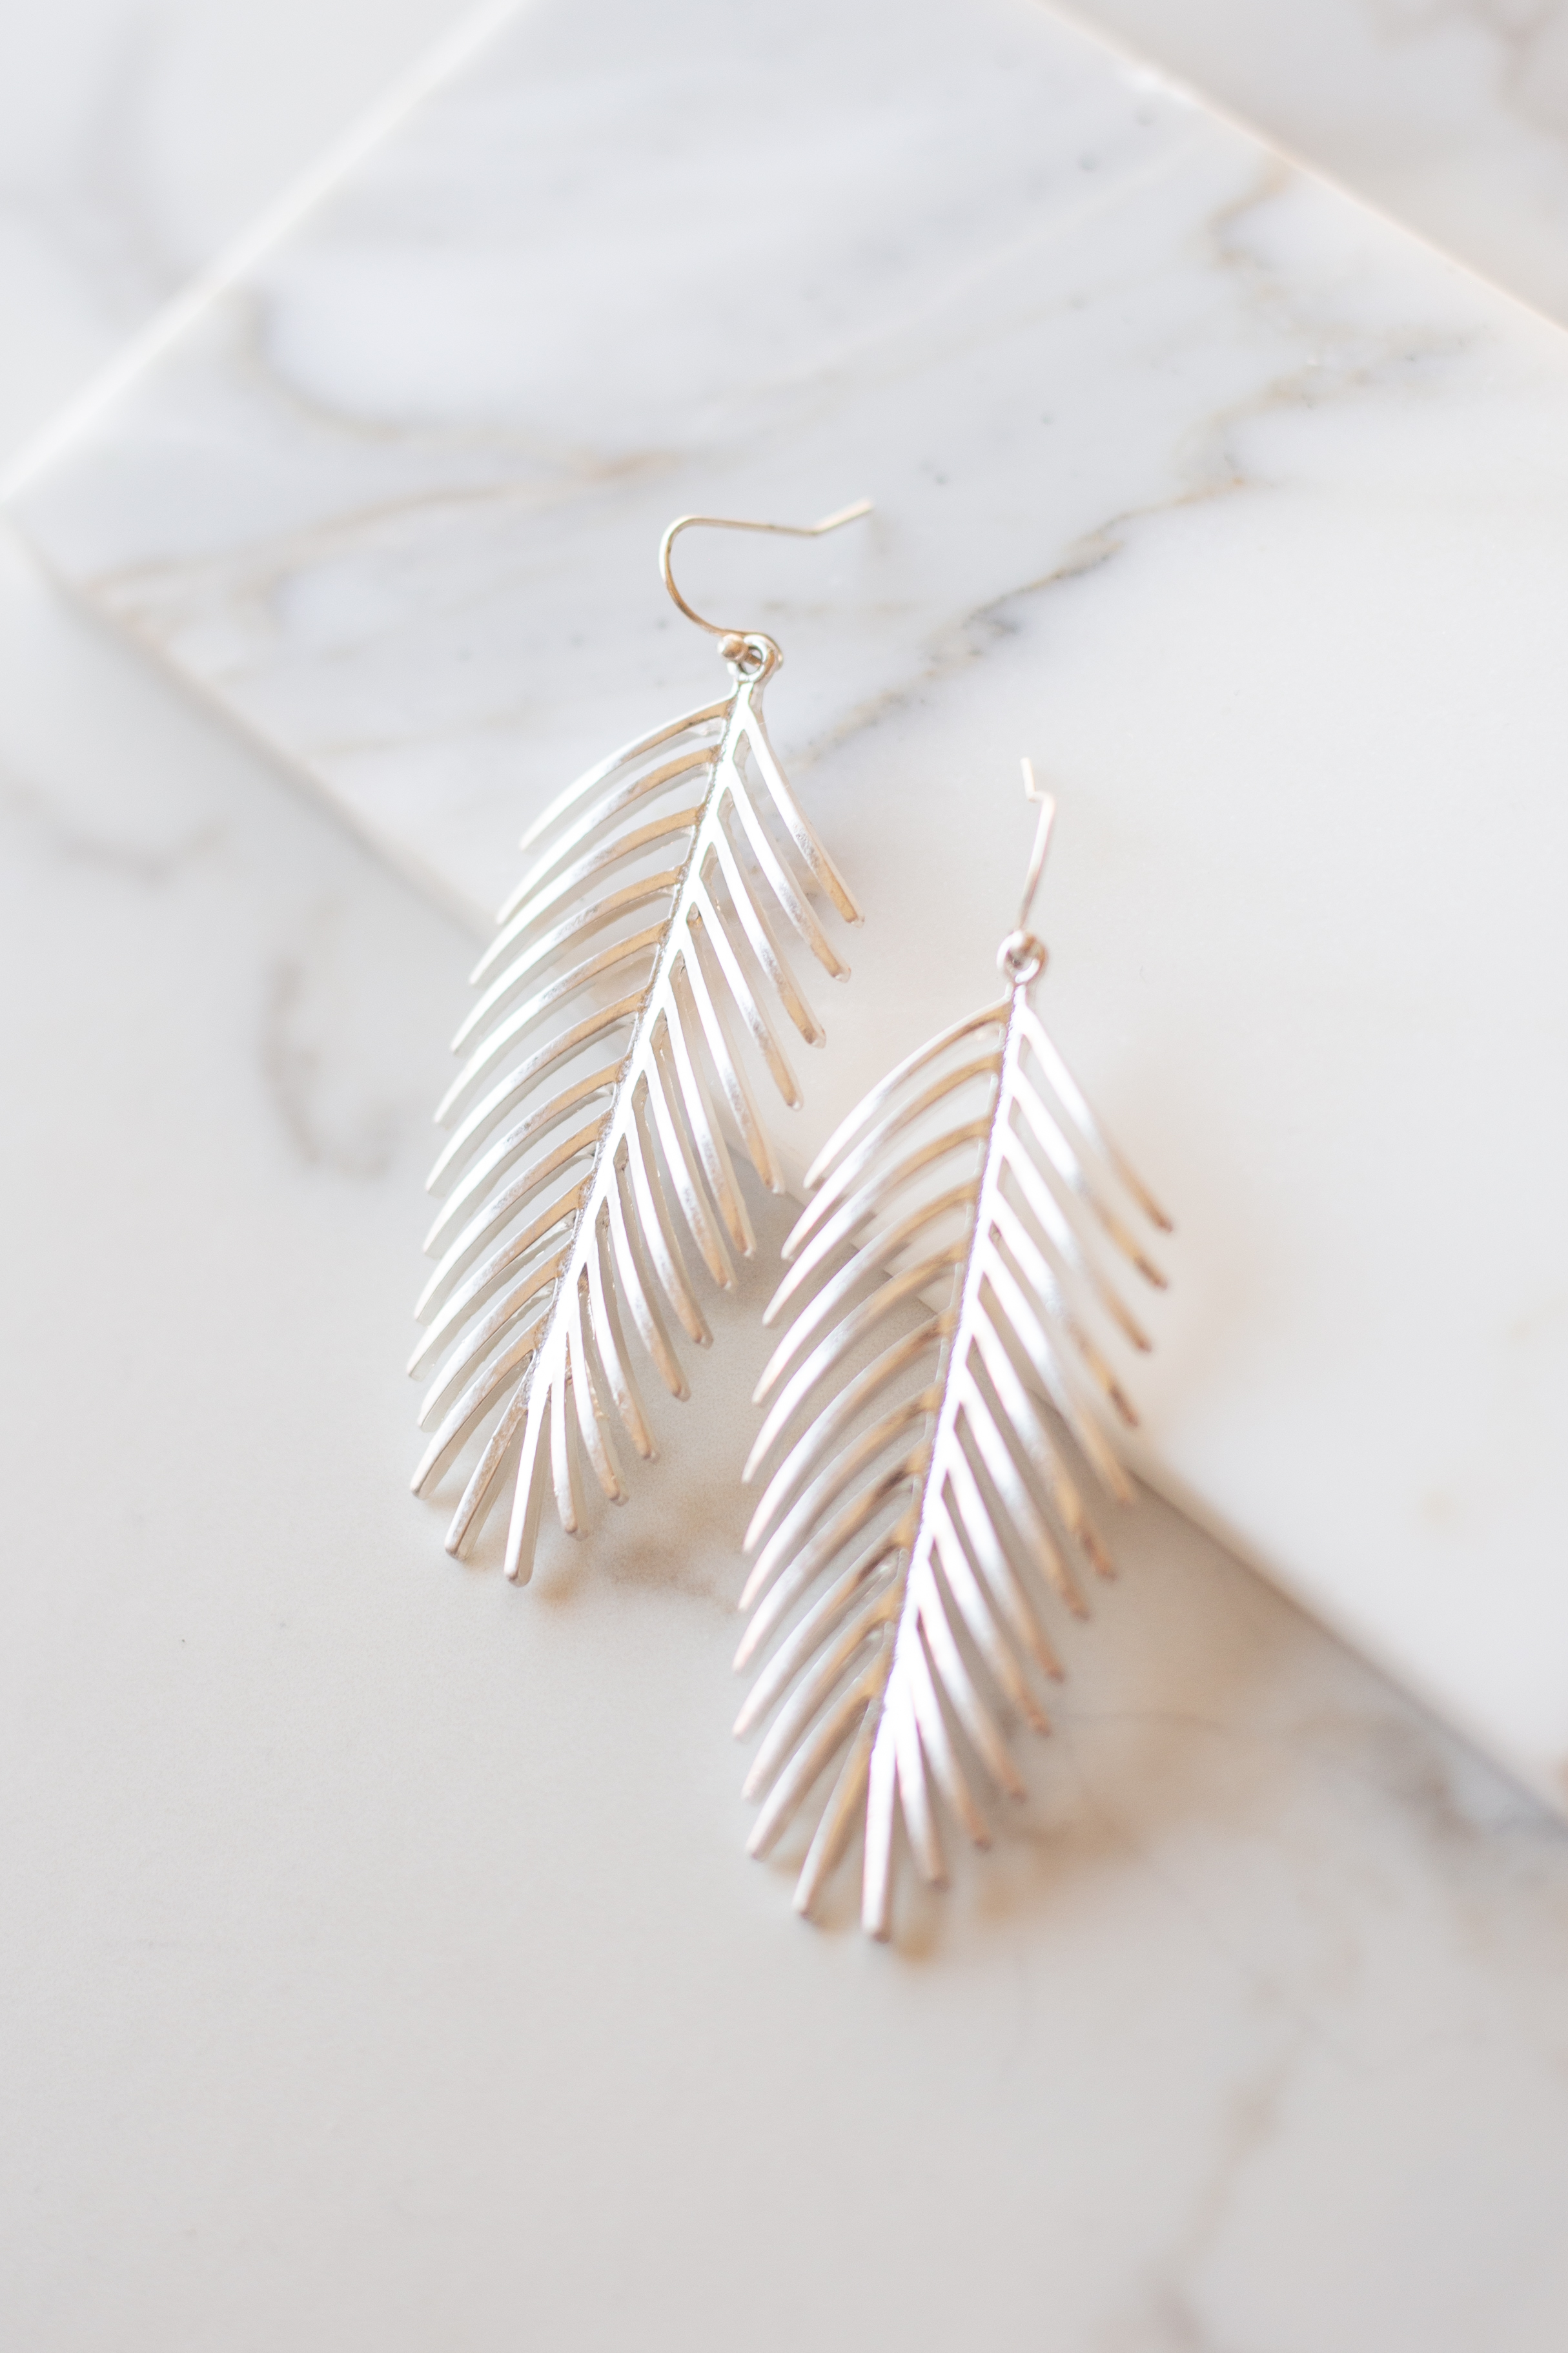 Silver Dangle Earrings with Palm Leaf Pendants